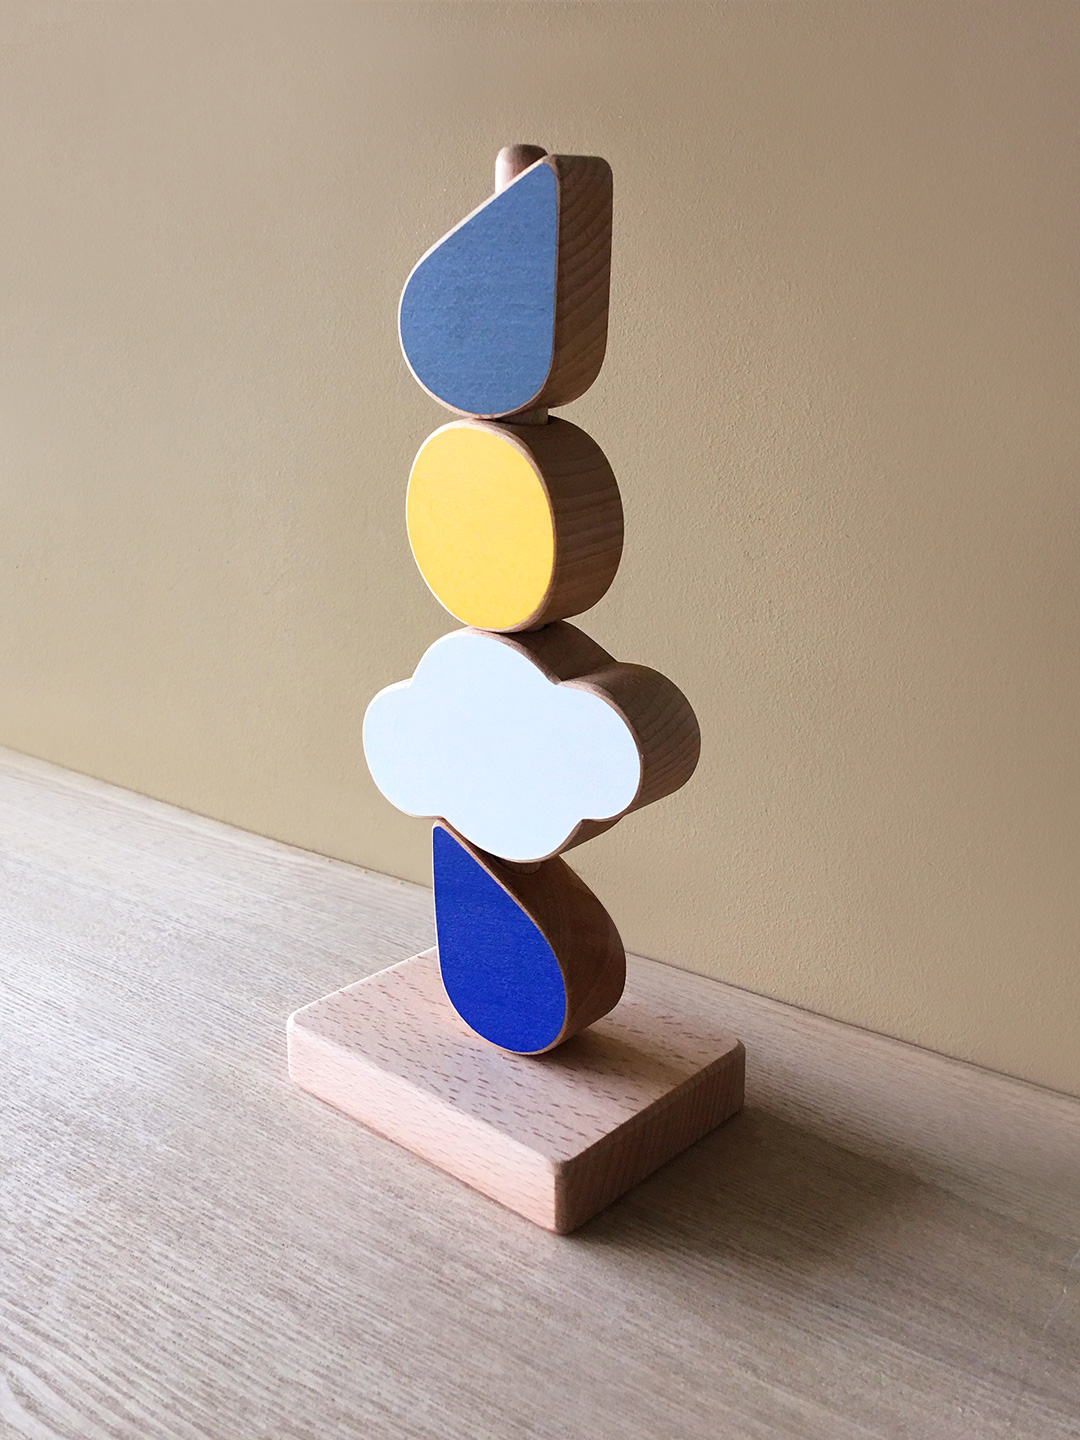 Catch The Cloud Stacking Toy